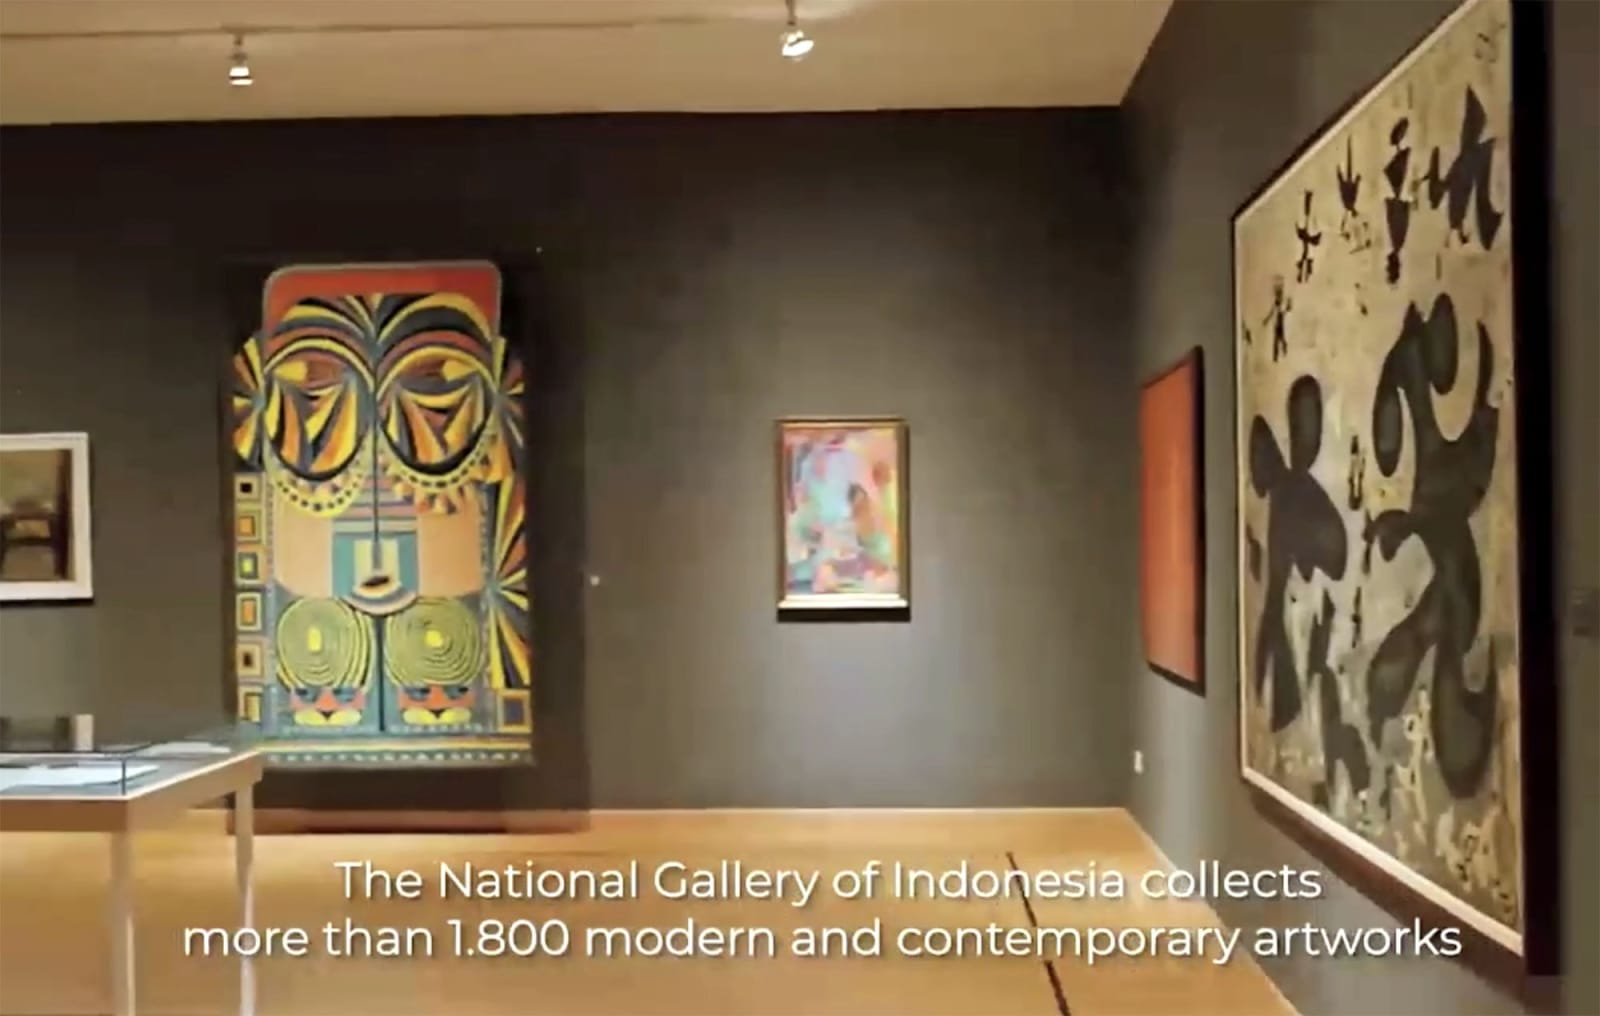 Photo: Galeri Nasional Indonesia (still from overview video)